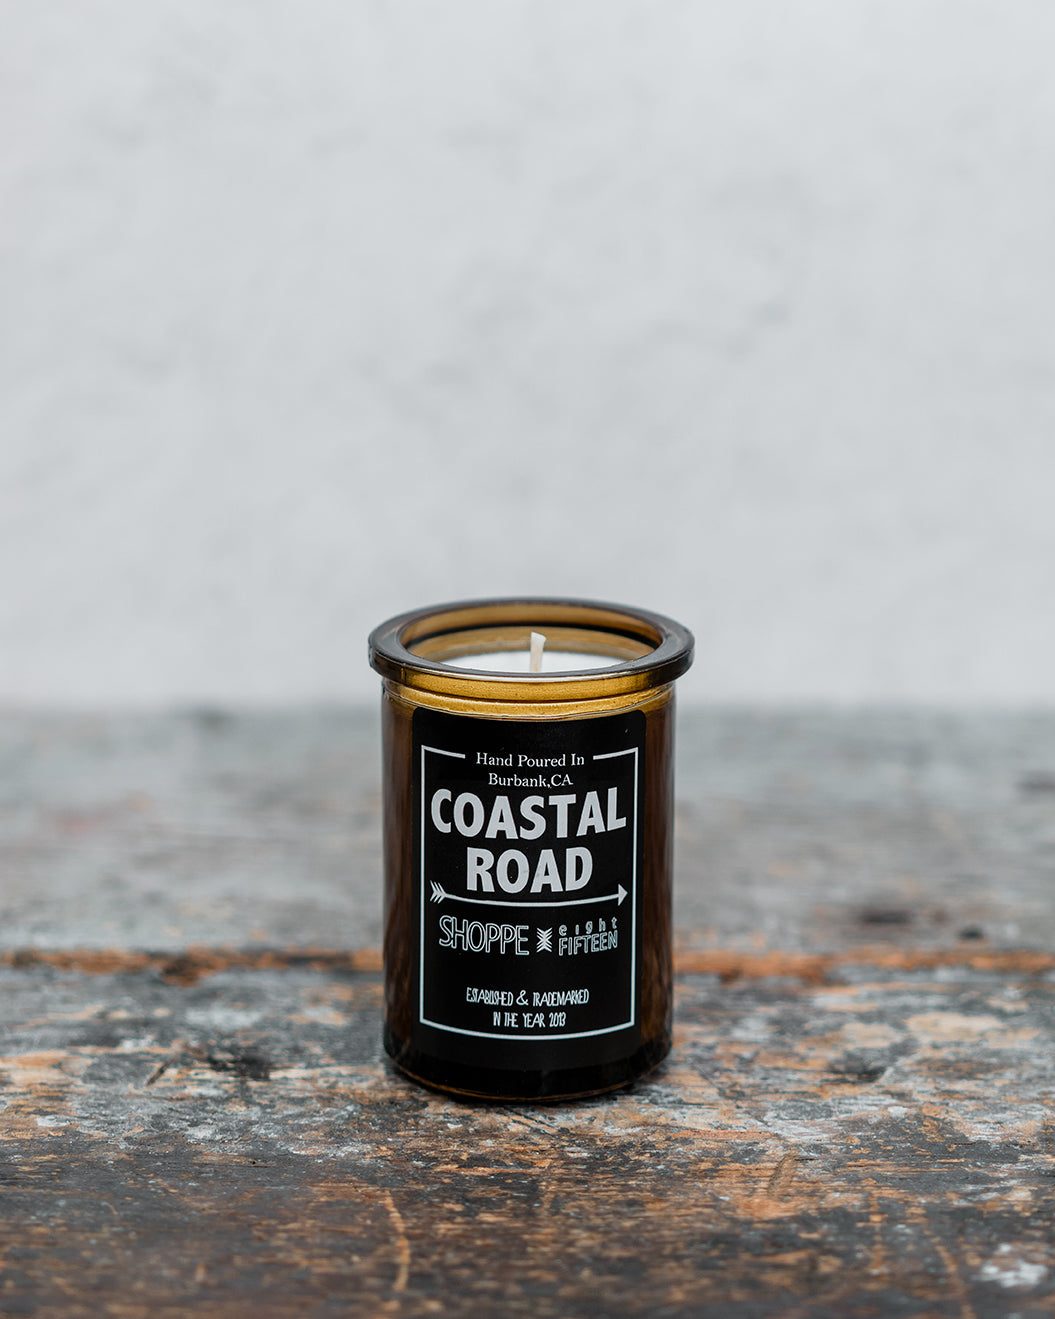 Coastal Road amber glass candle on wooden shelf